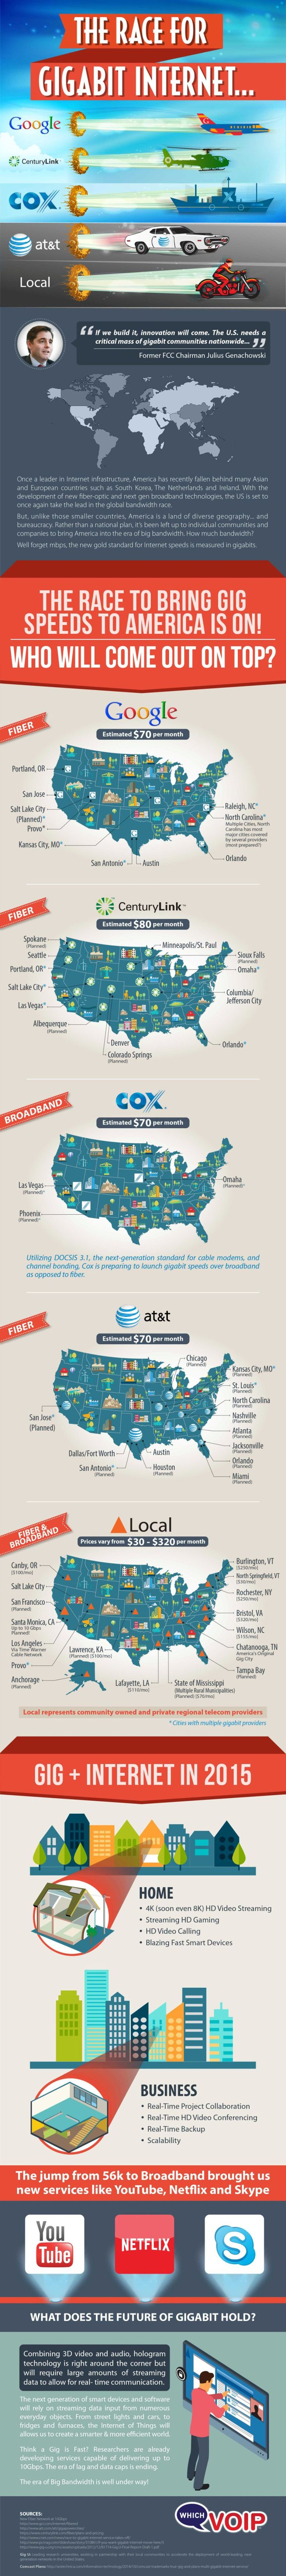 Infographic Of The Day: Here Comes Gigabit Internet